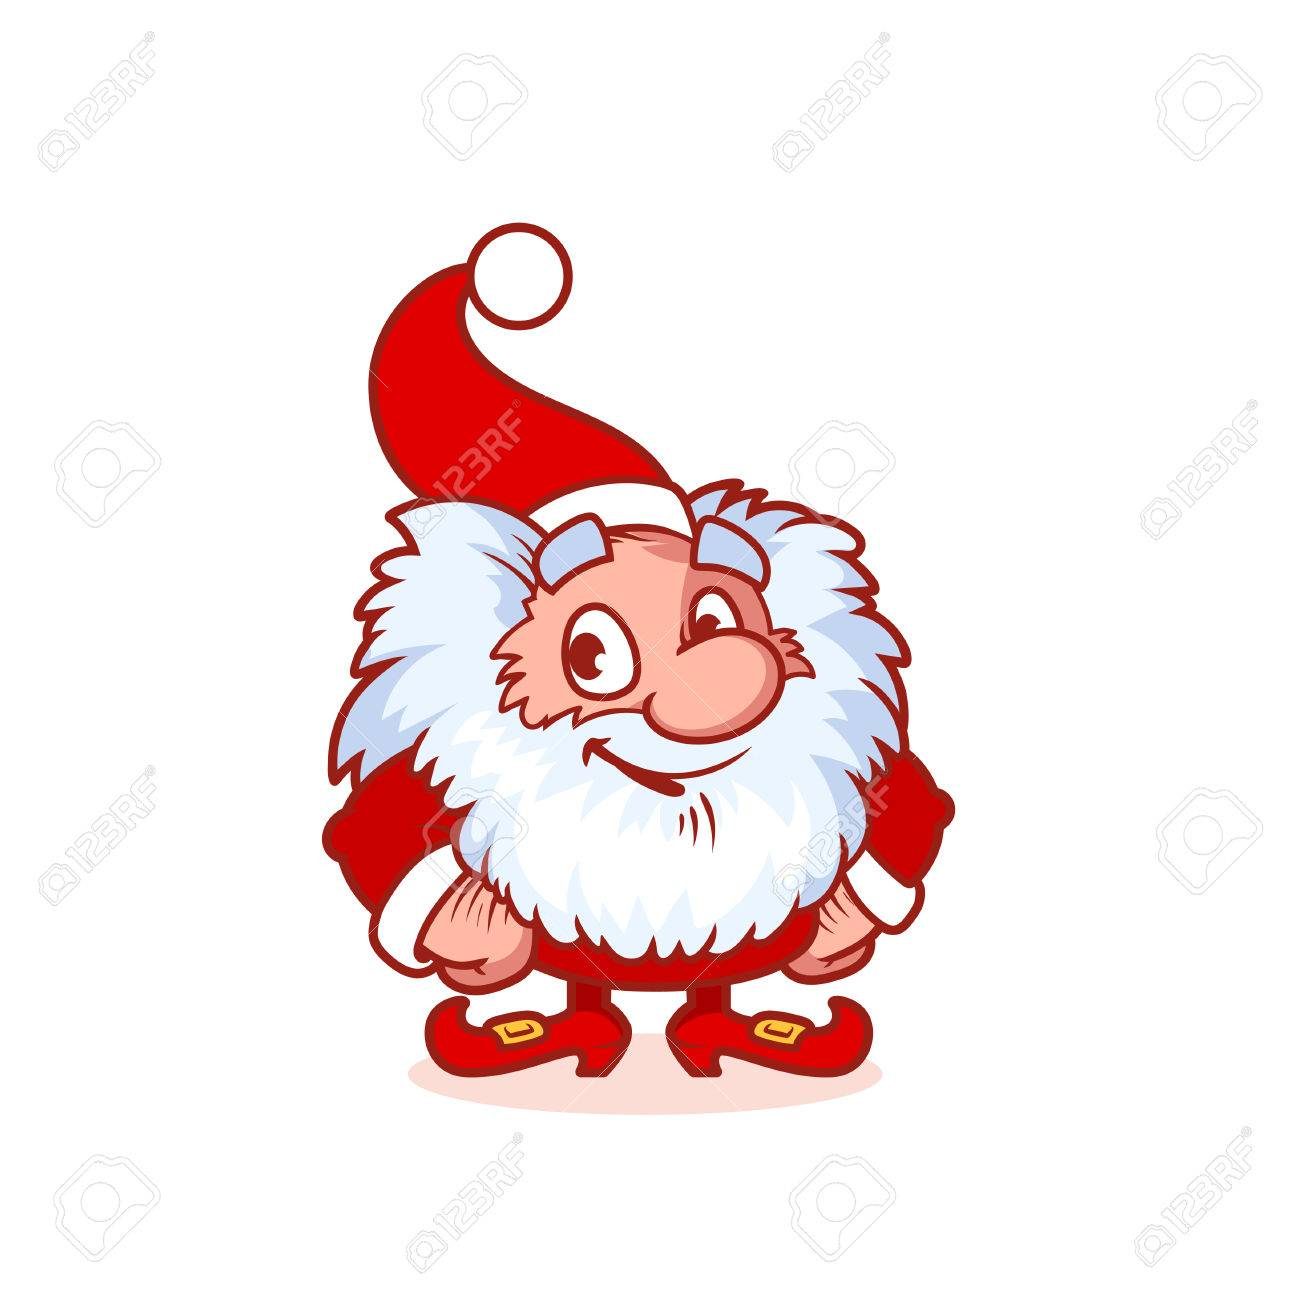 Christmas Gnomes Clipart.Smiling Christmas Gnome In Red Costume Funny Cartoon Character